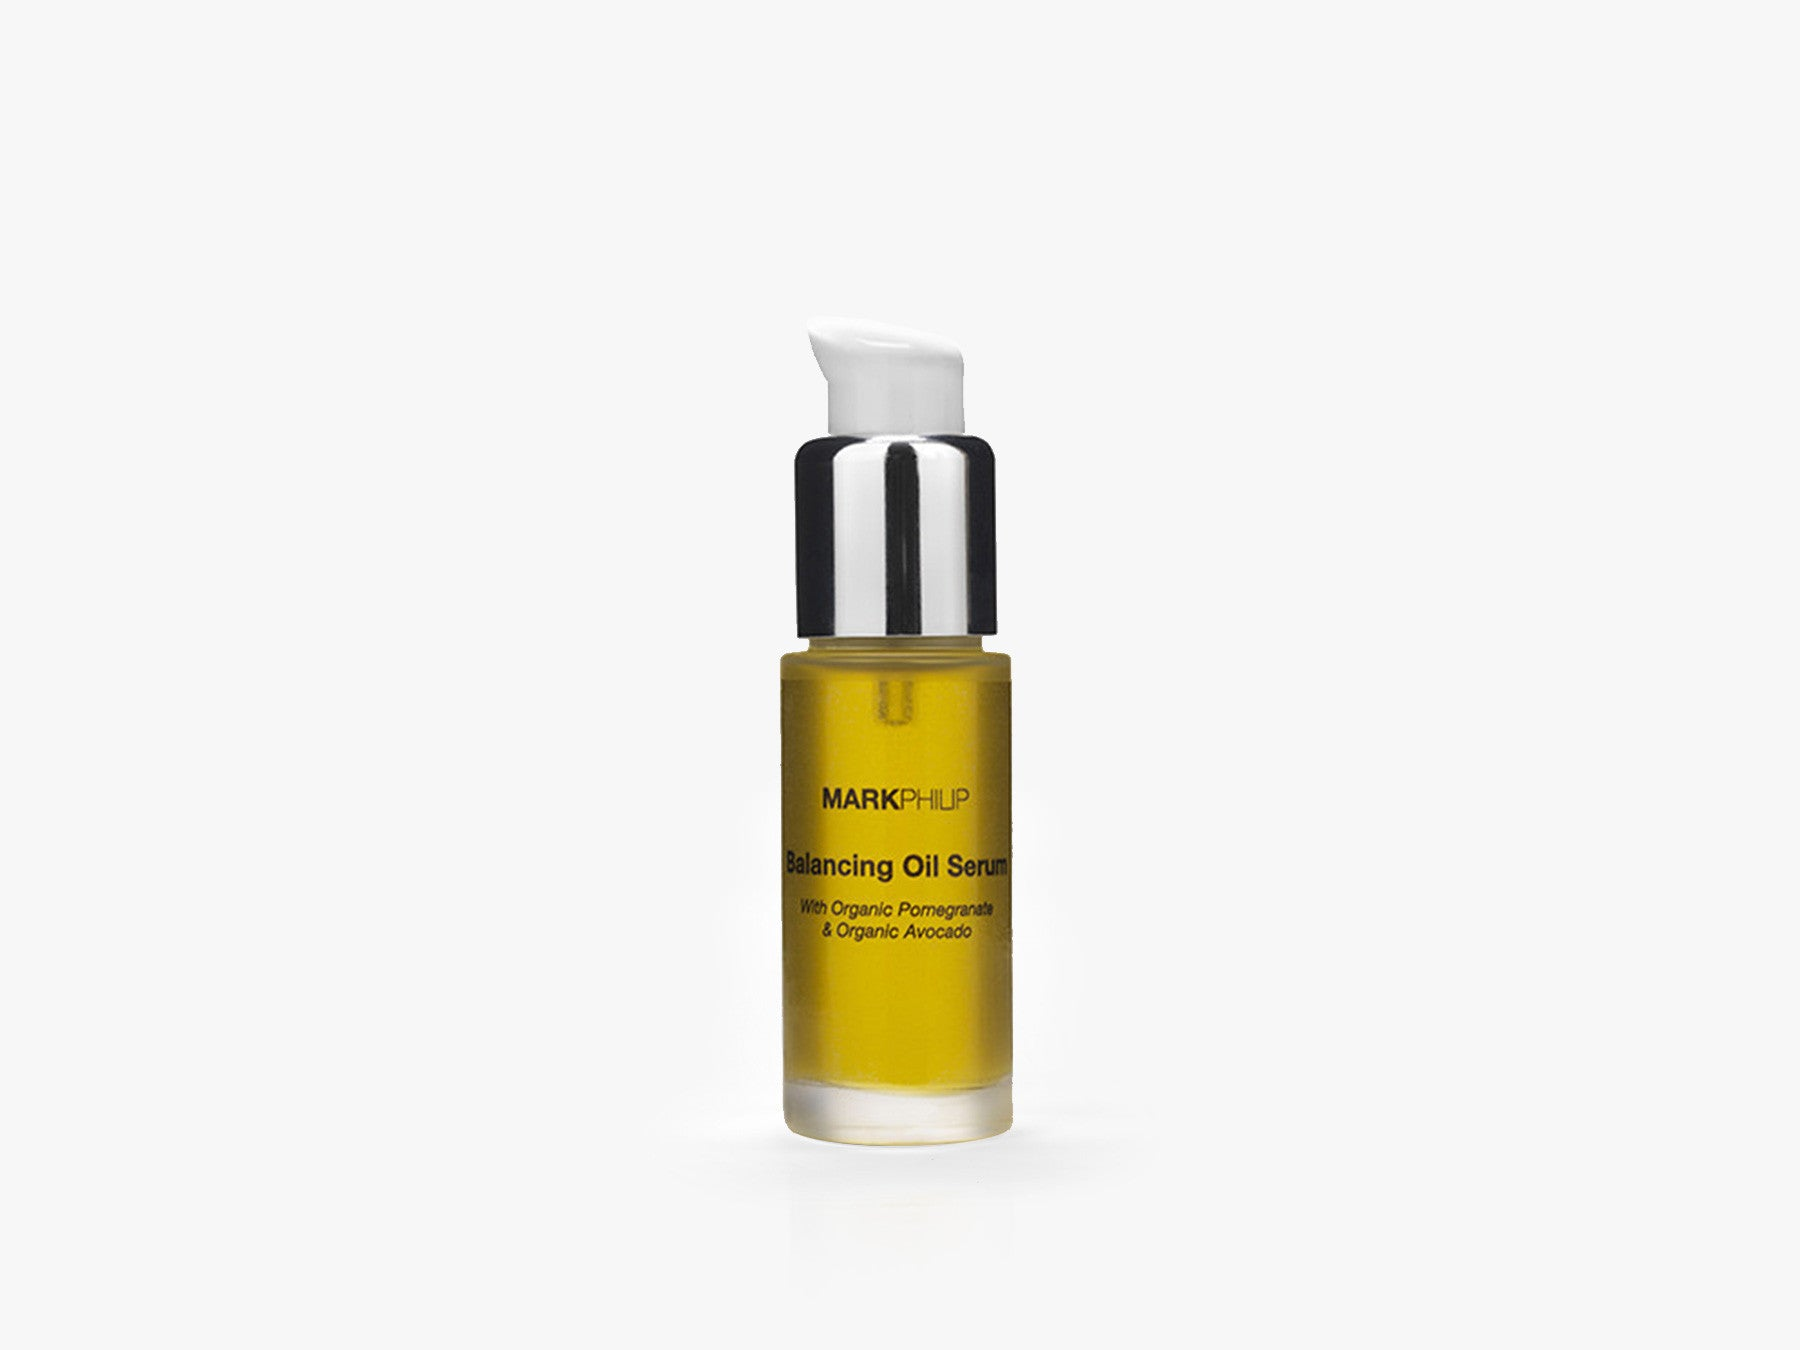 Balancing Oil Serum fra Mark Philip